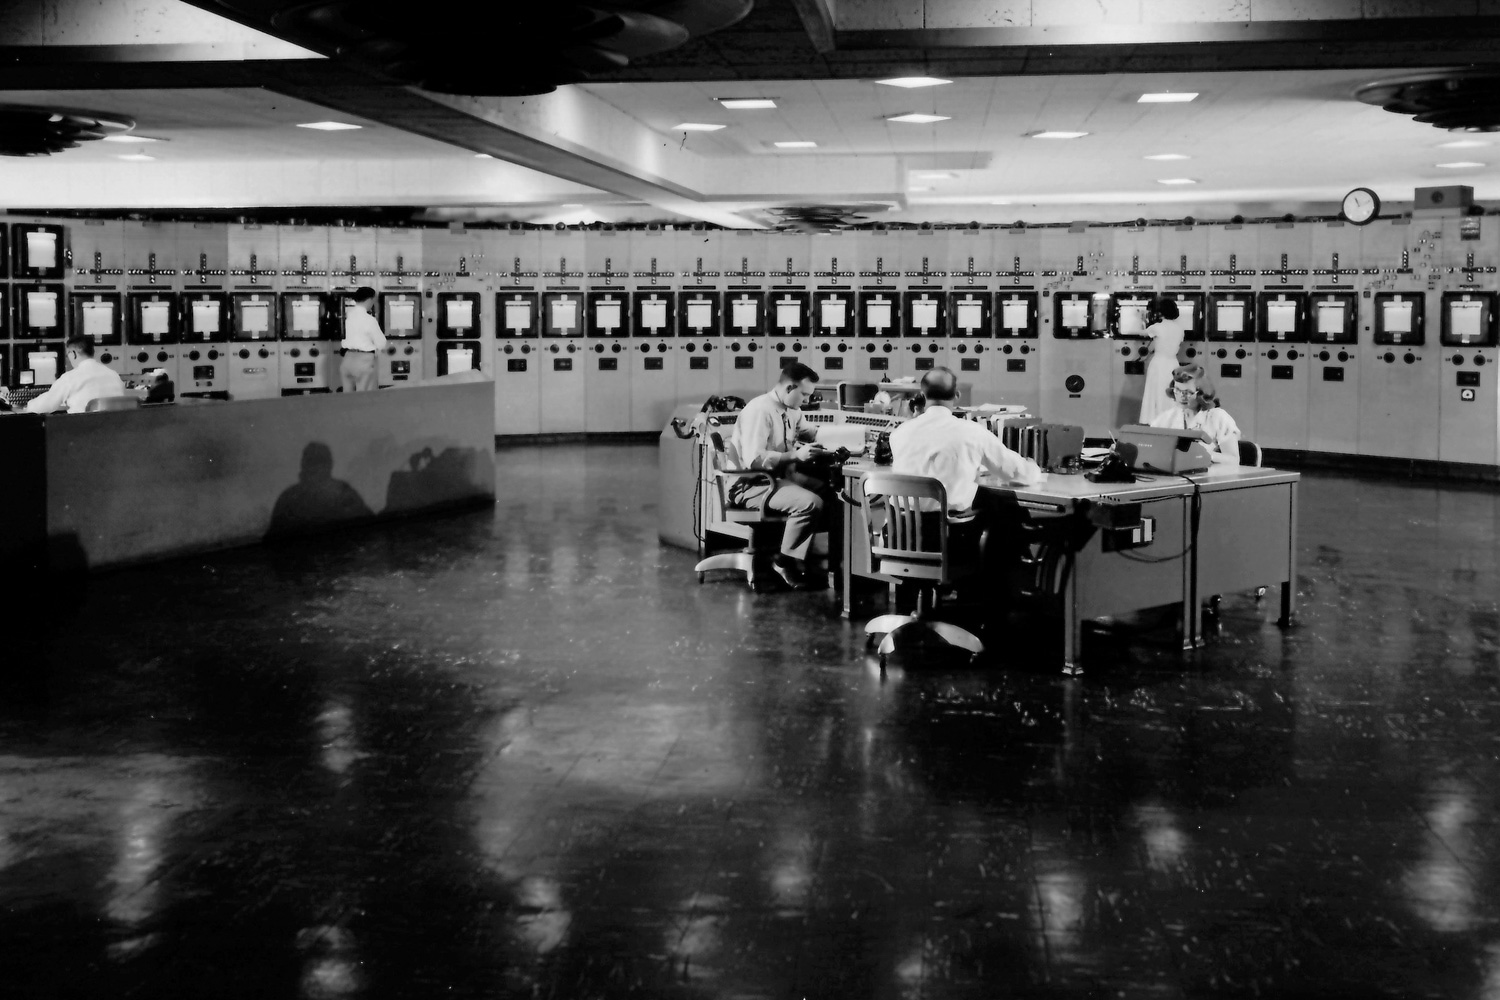 K-25 Central Control Room